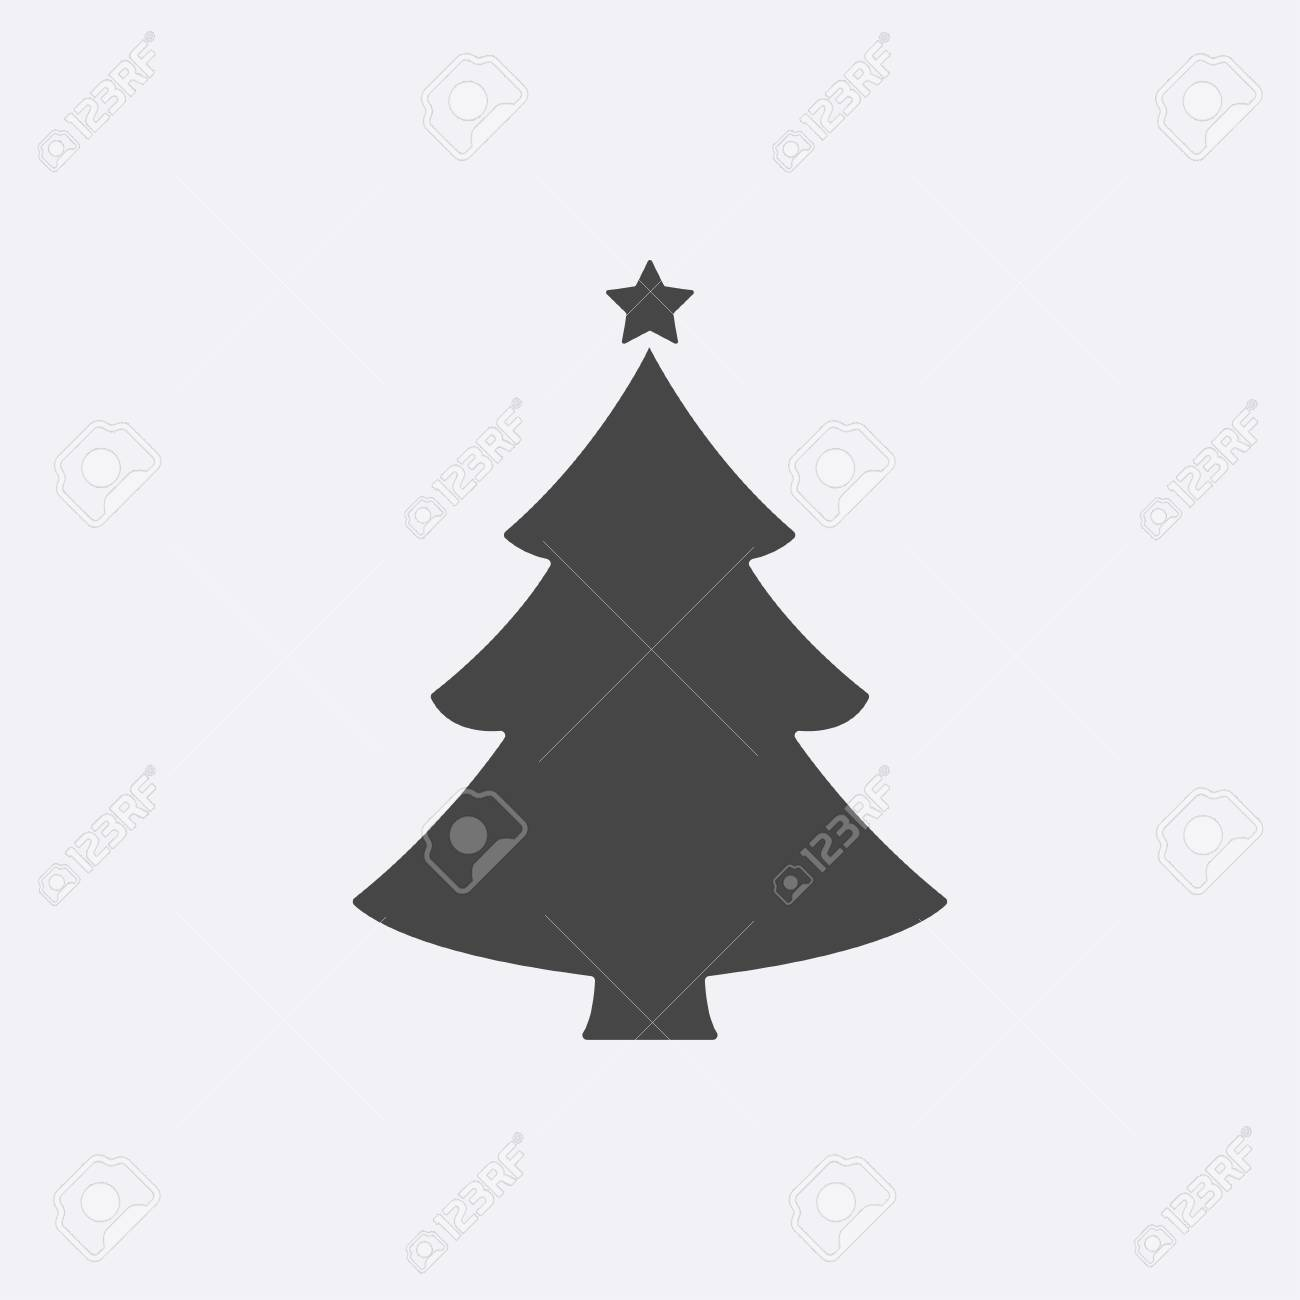 Christmas Tree Vector Image.Christmas Tree Modern Flat Pictogram Internet Concept Trendy